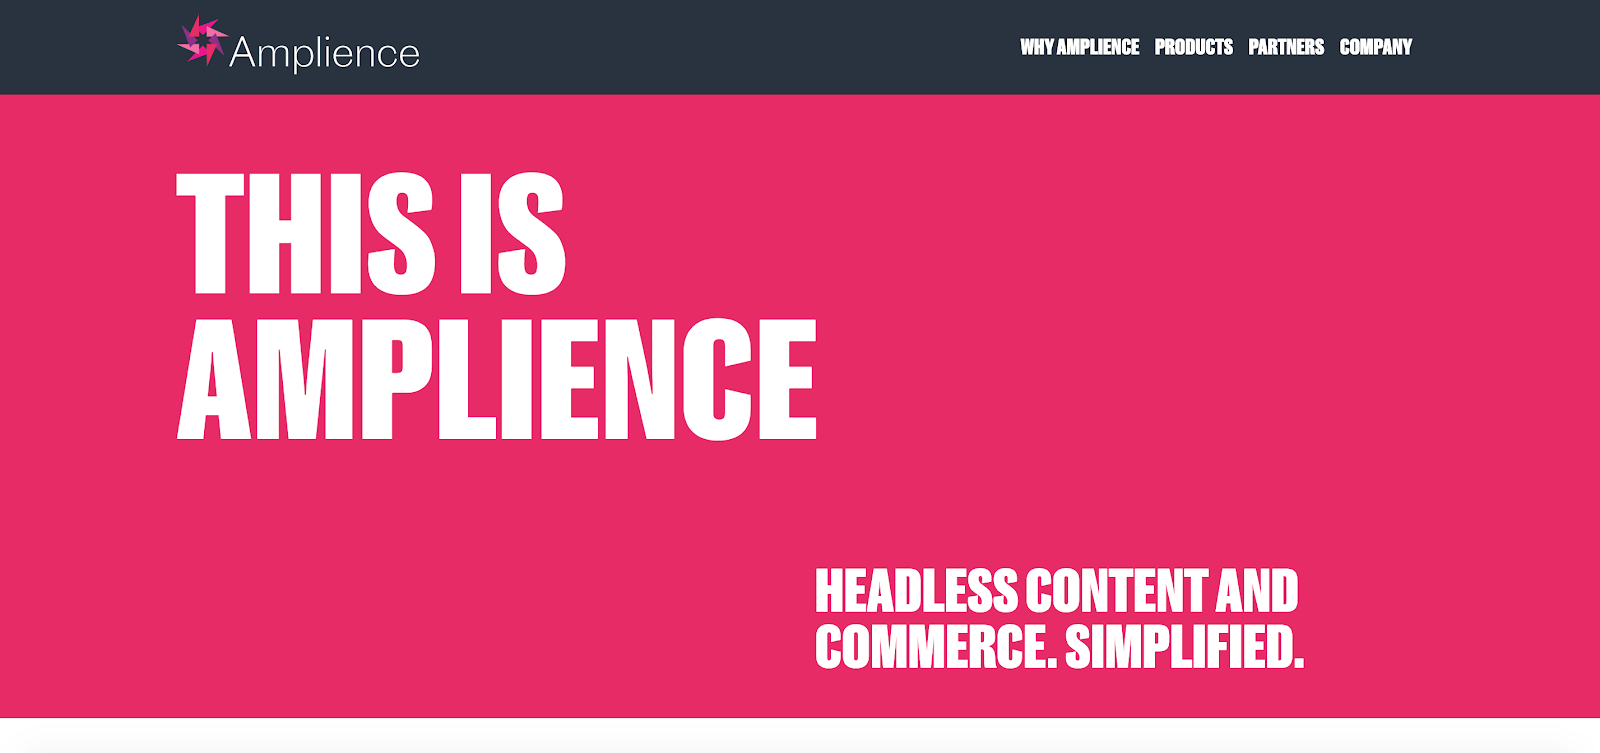 Amplience is a headless content manager created specifically for retail